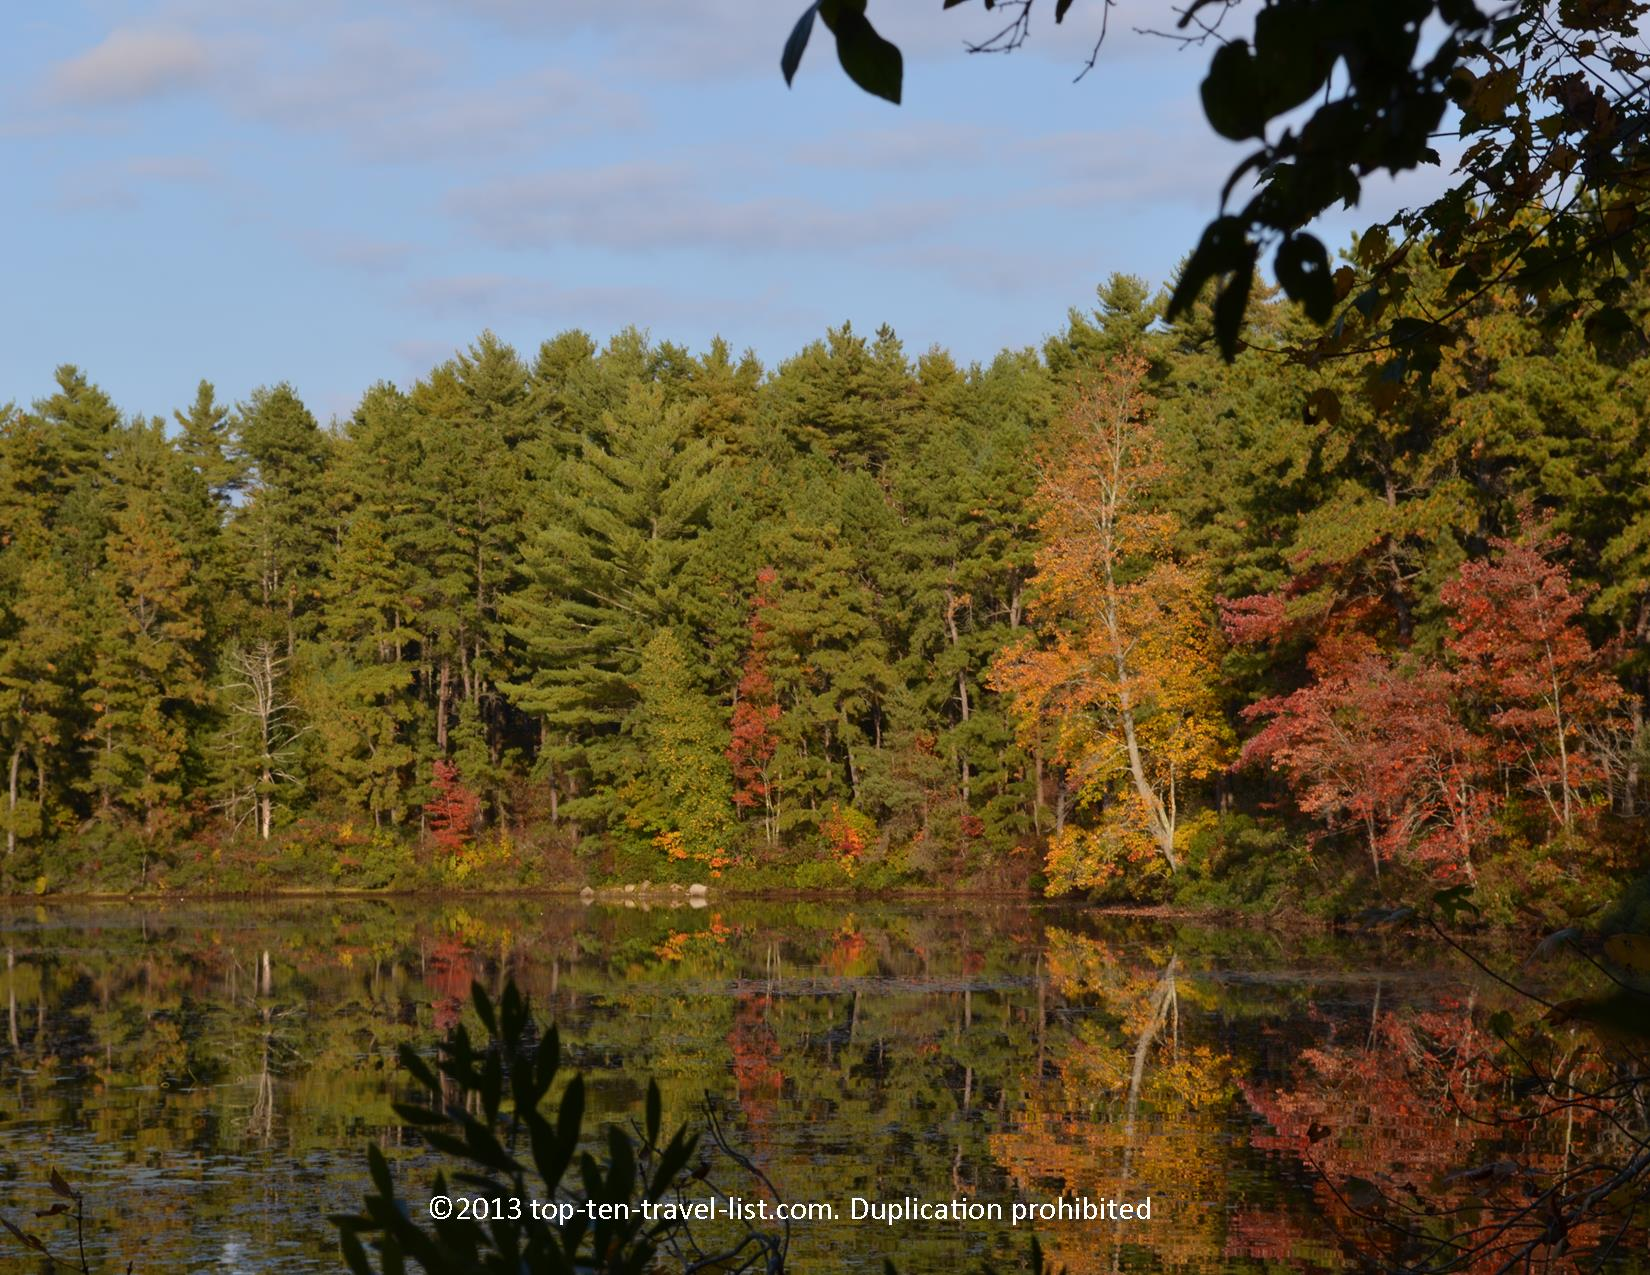 Beautiful fall scenery at Myles Standish STate Forest in Massachusetts